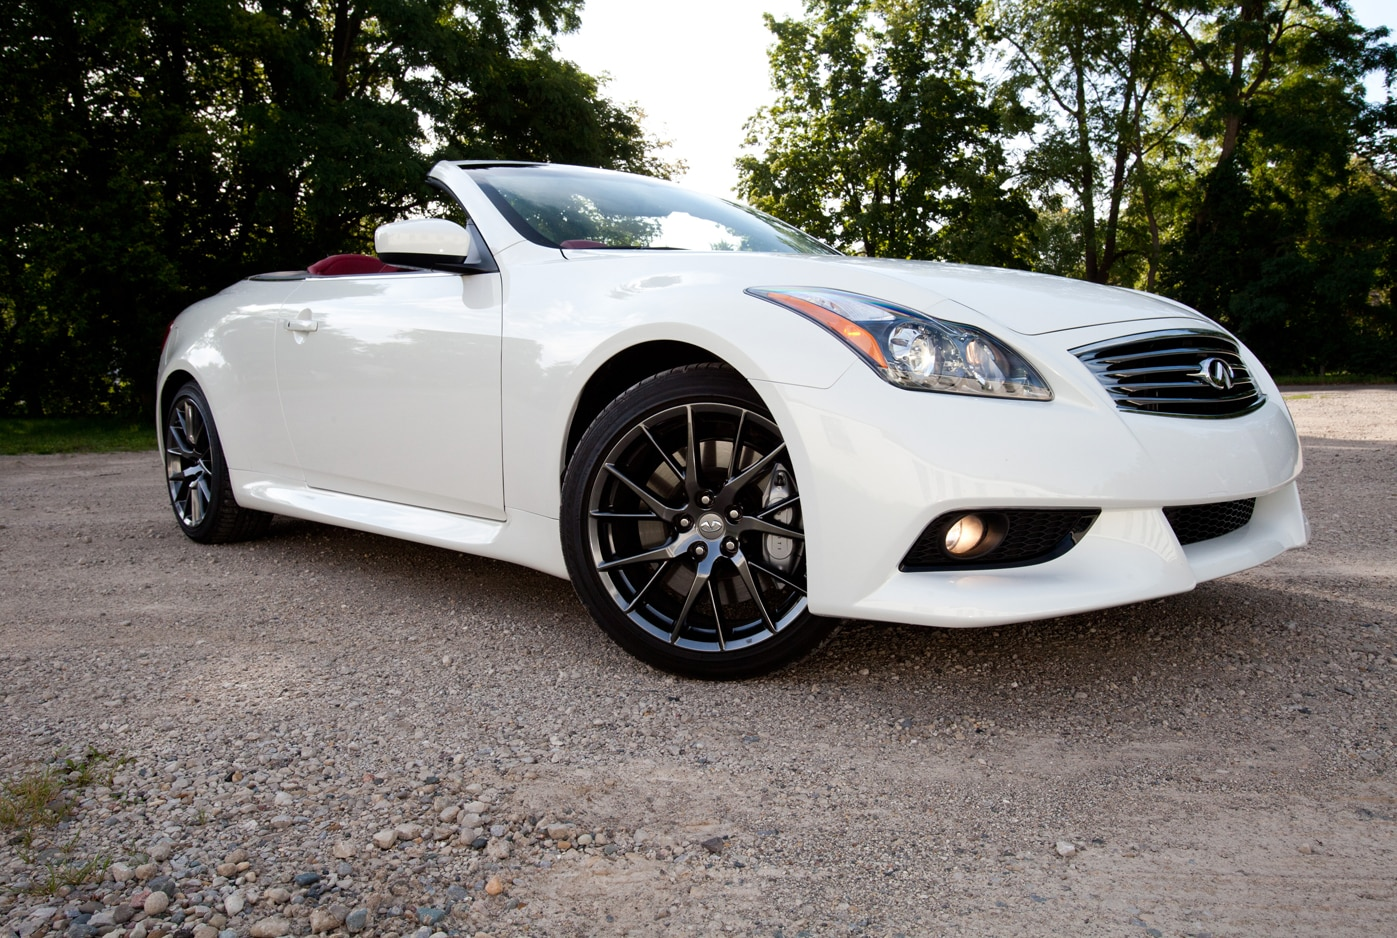 2013 Infiniti IPL G37 Convertible Front Right Side View1